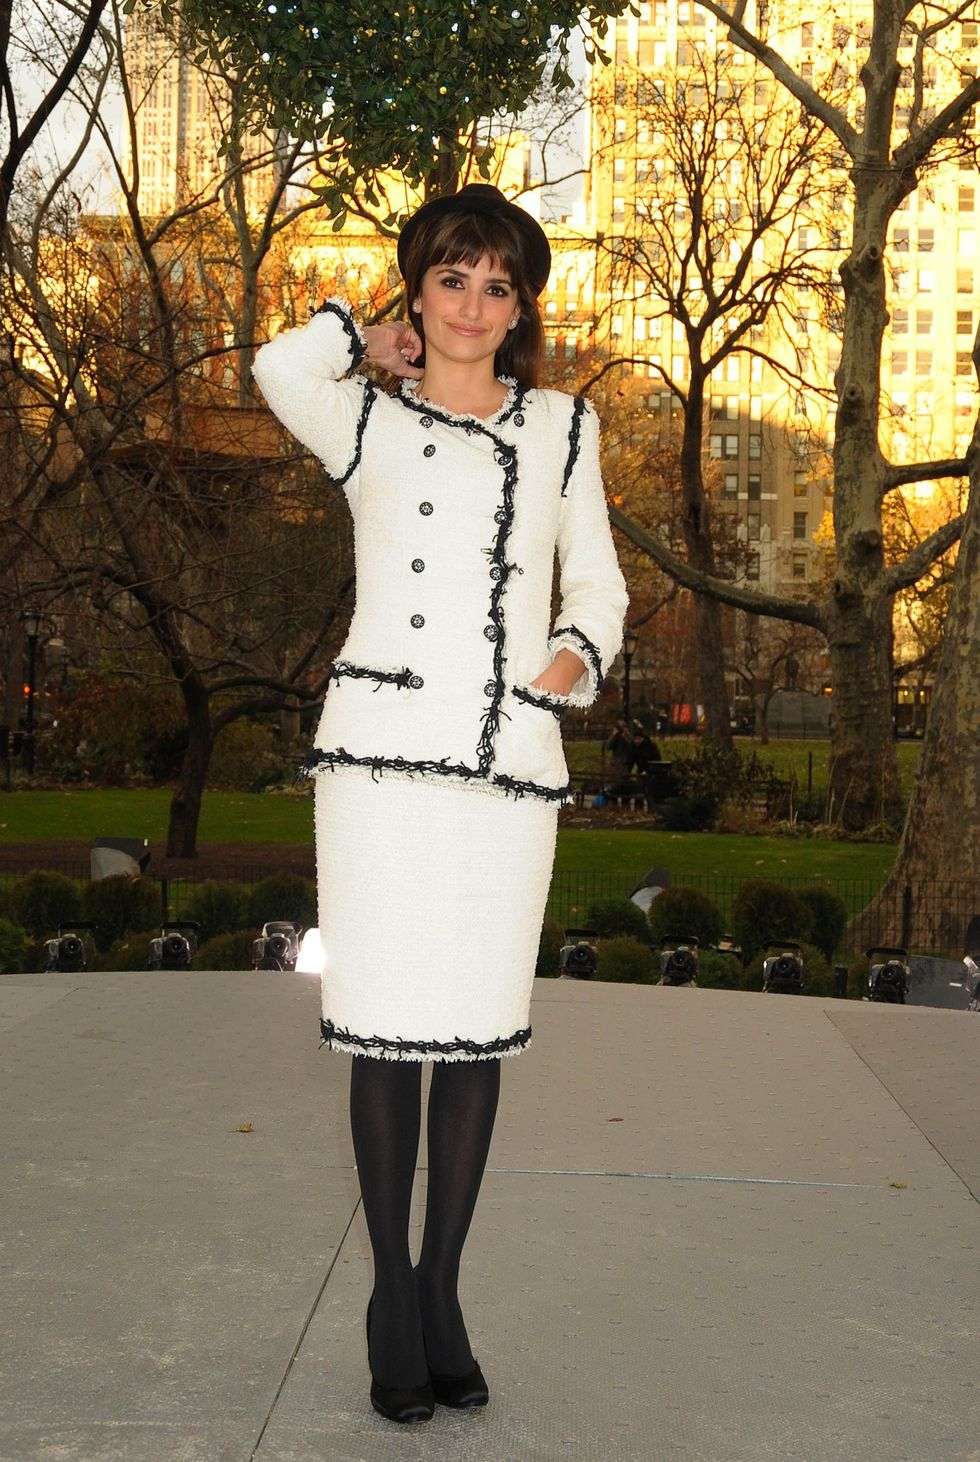 penelope-cruz-a-diamond-is-forever-unbreakable-kiss-mistletoe-installation-in-new-york-01